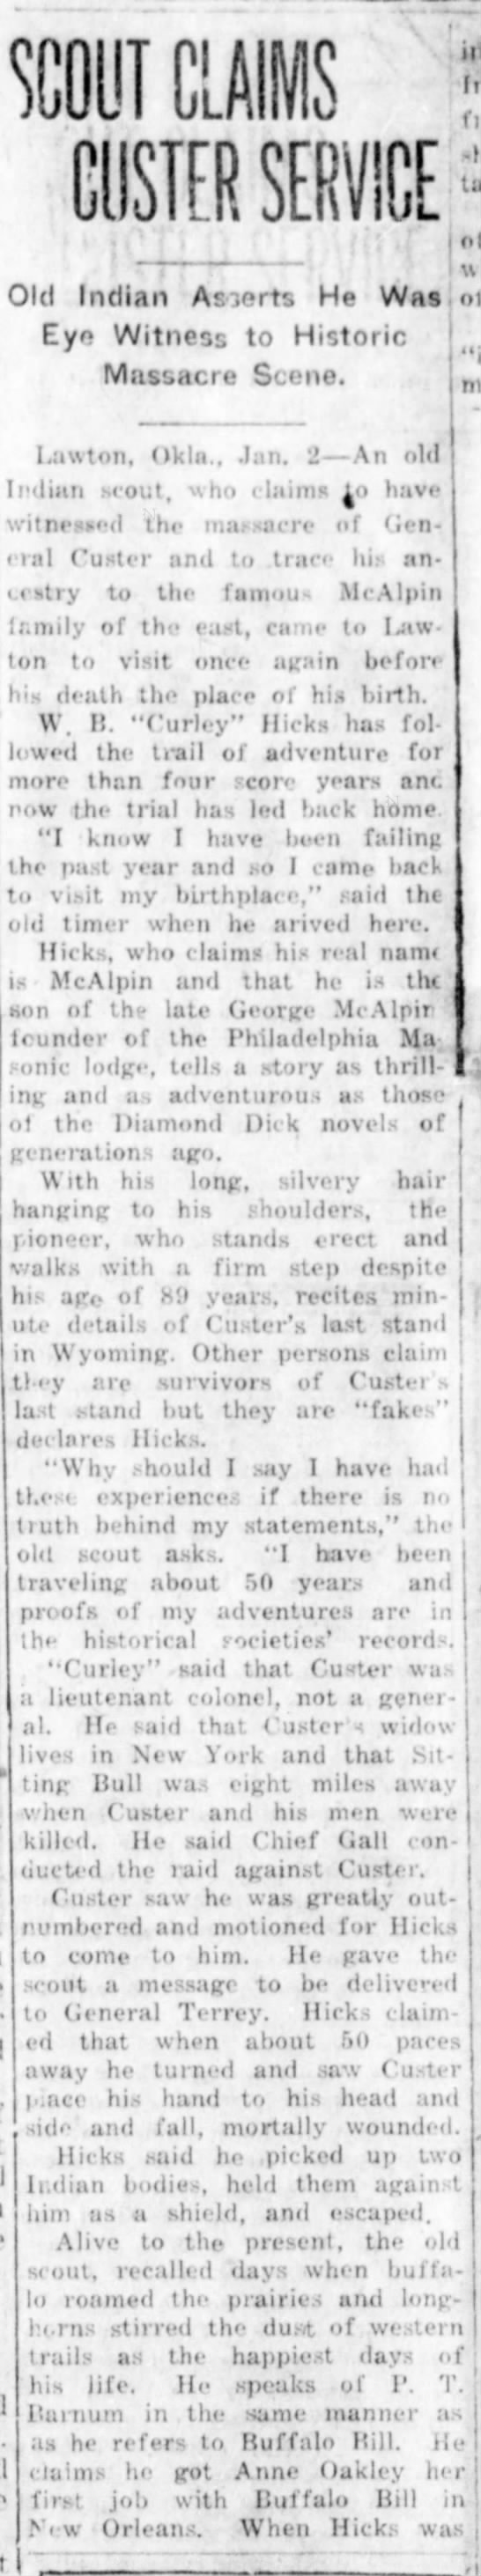 Man claiming to be survivor of Battle of the Little Bighorn gives an account of his experiences - Old Indian Asierts He Was Eye Witness to...